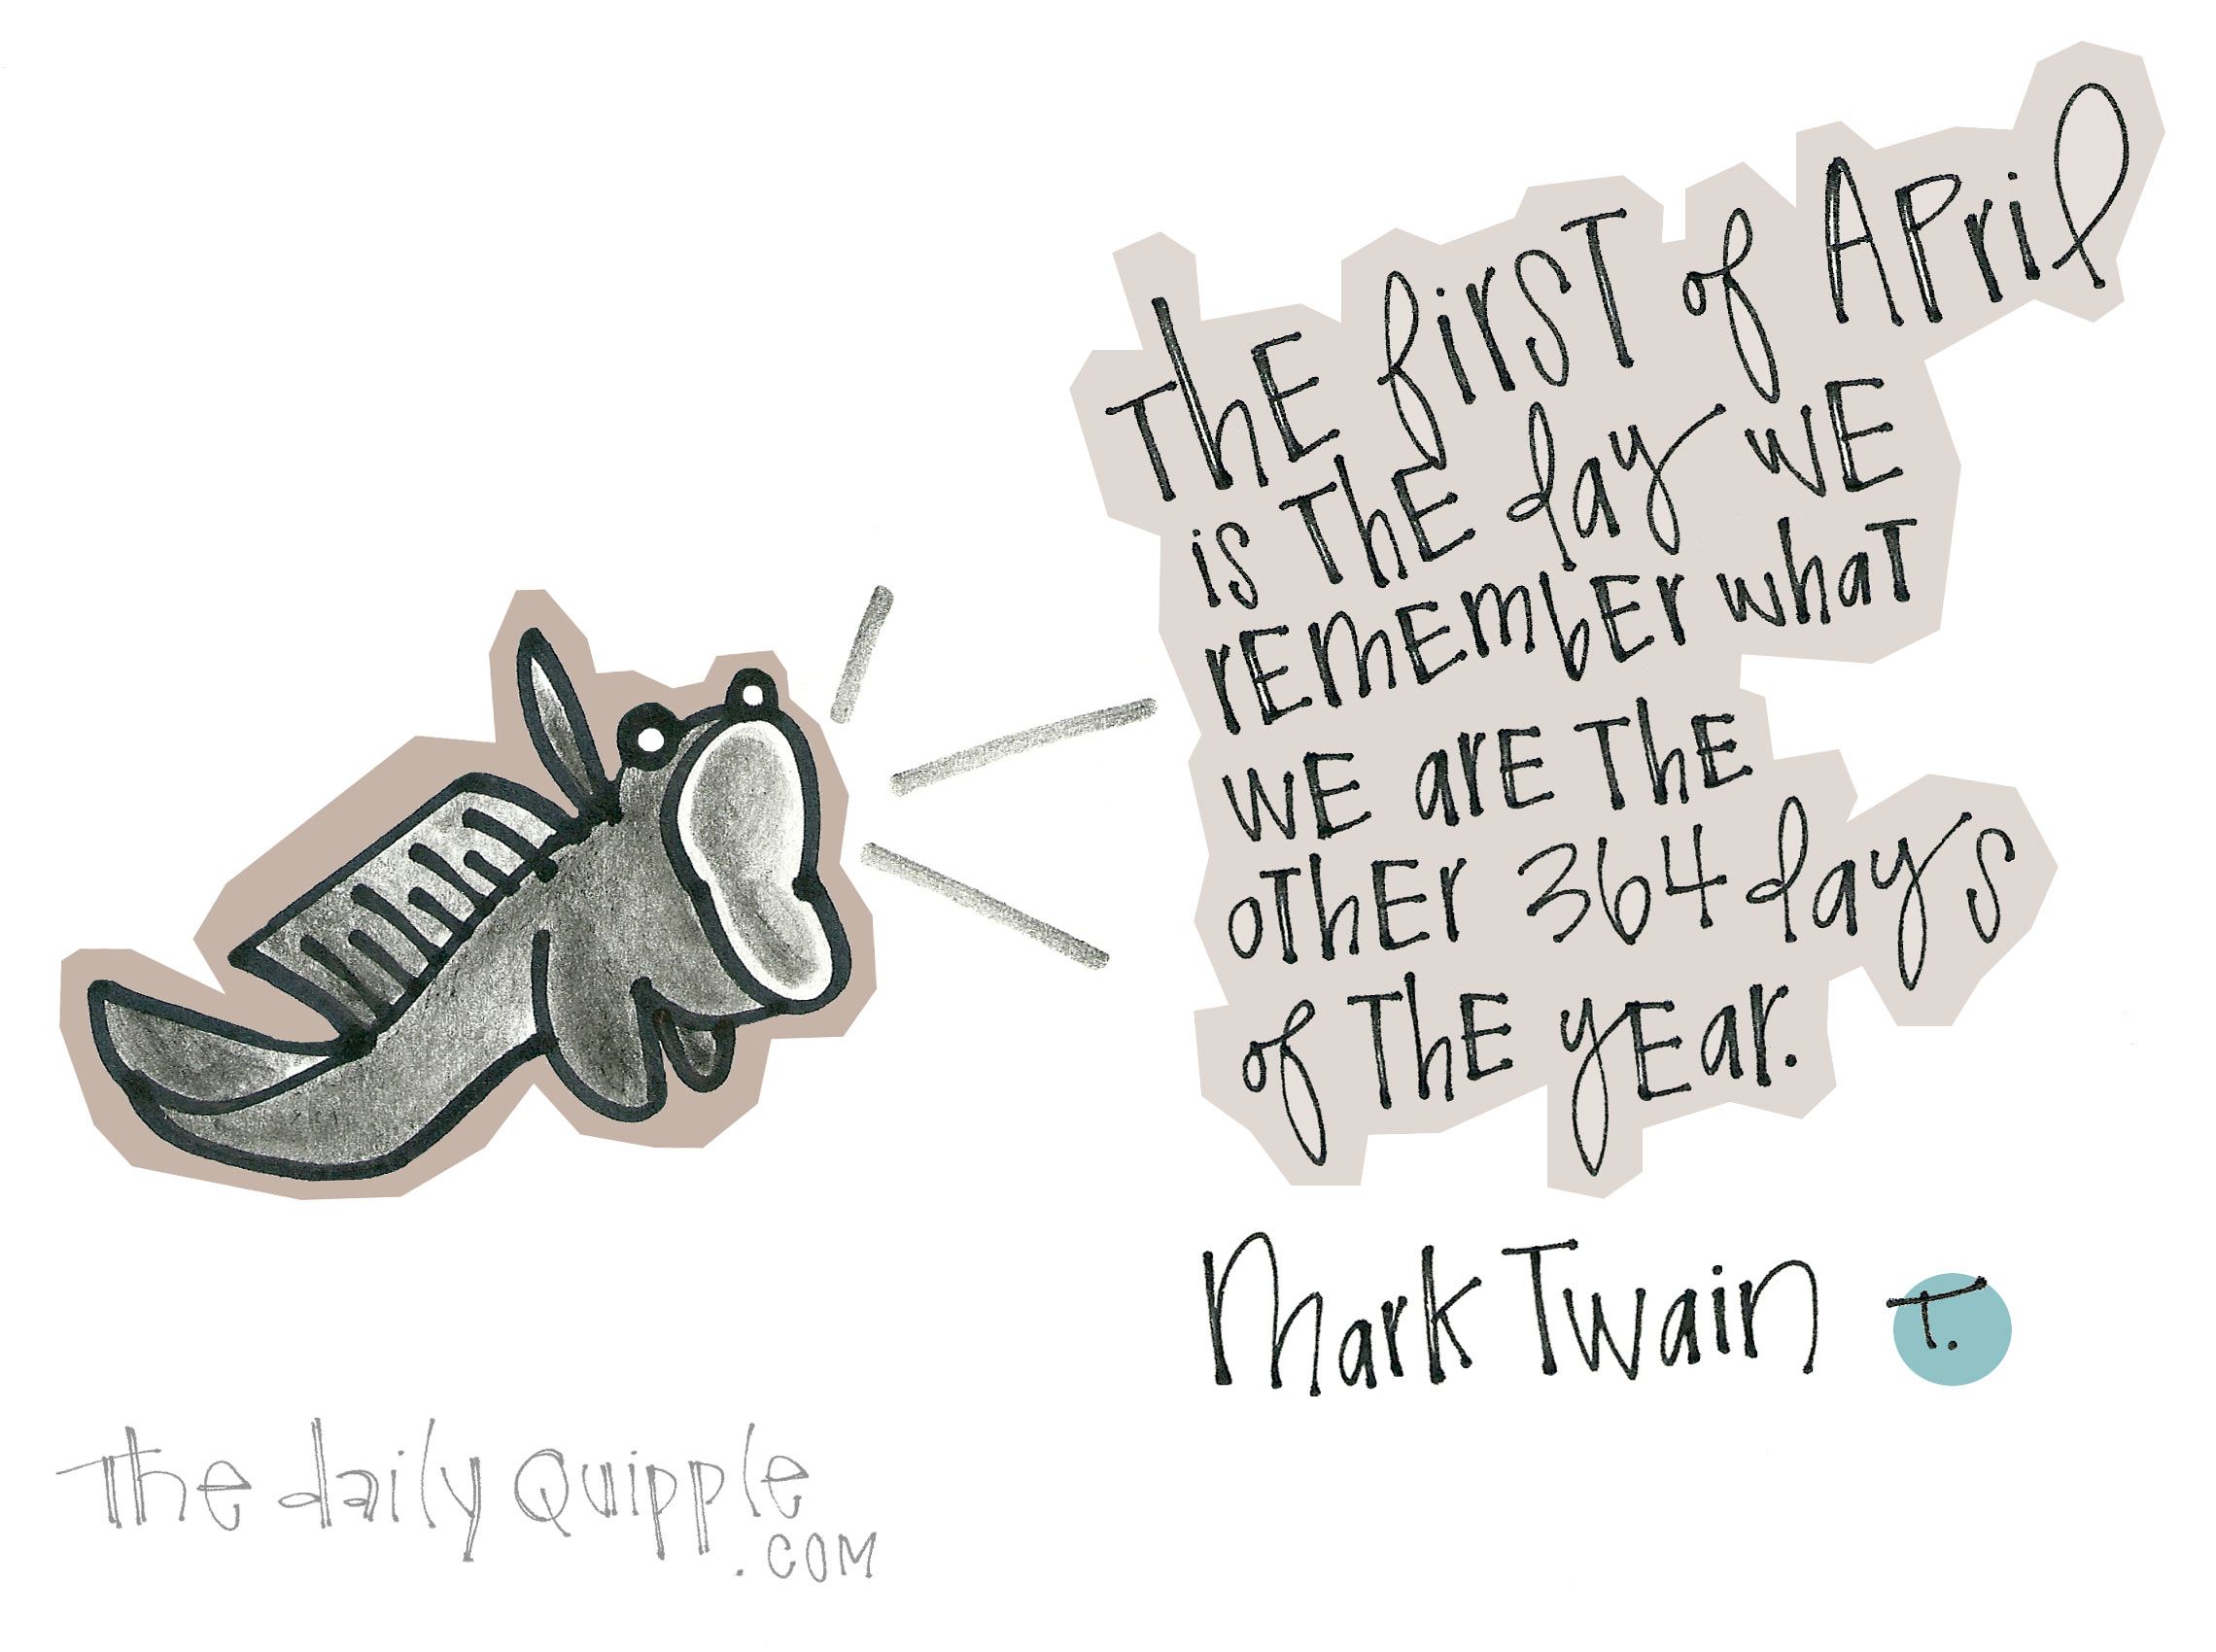 The first of April is the day we remember what we are the other 364 days of the year. [Mark Twain]